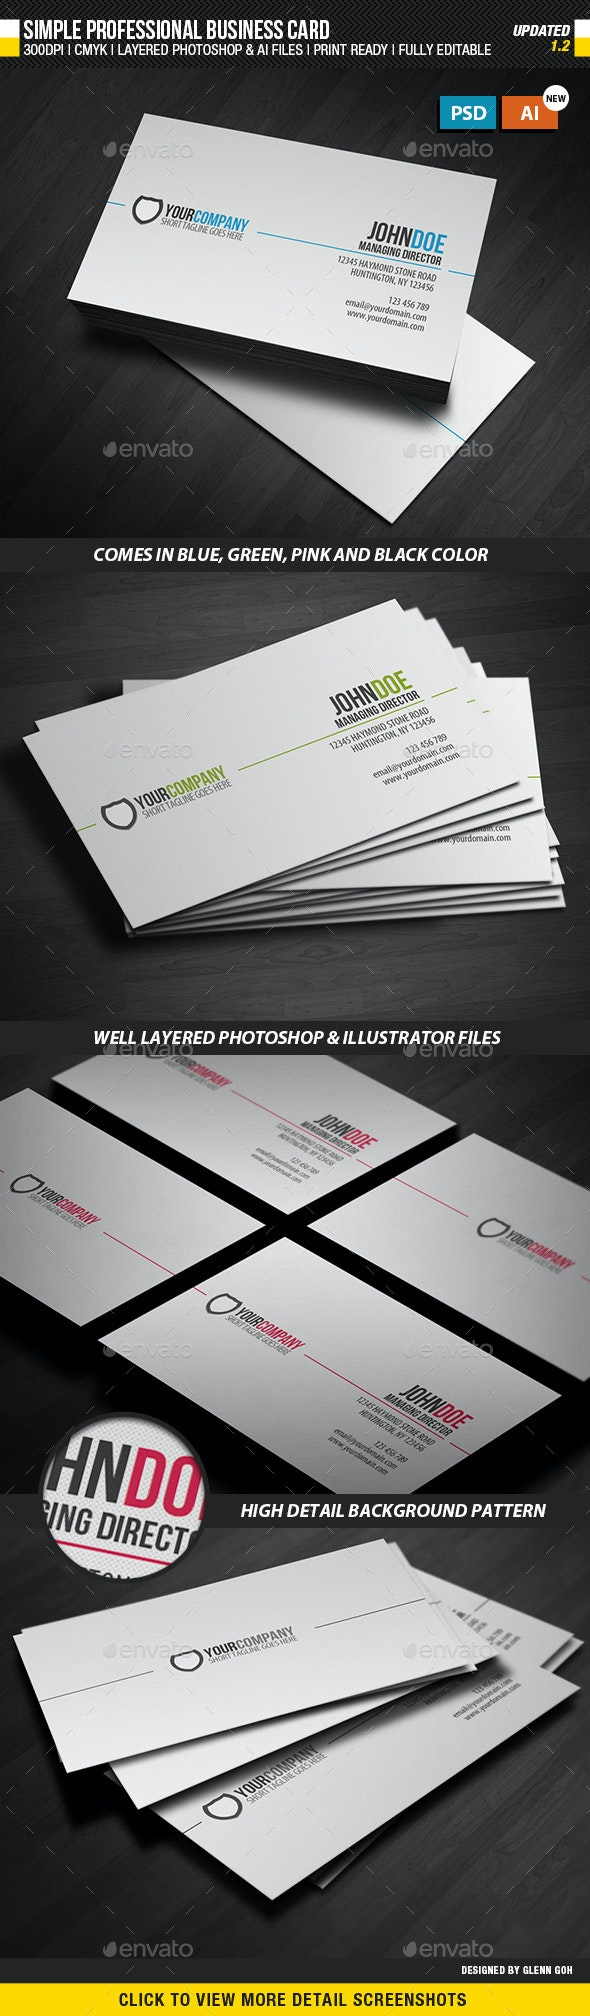 Simple Professional Business Card - Corporate Business Cards